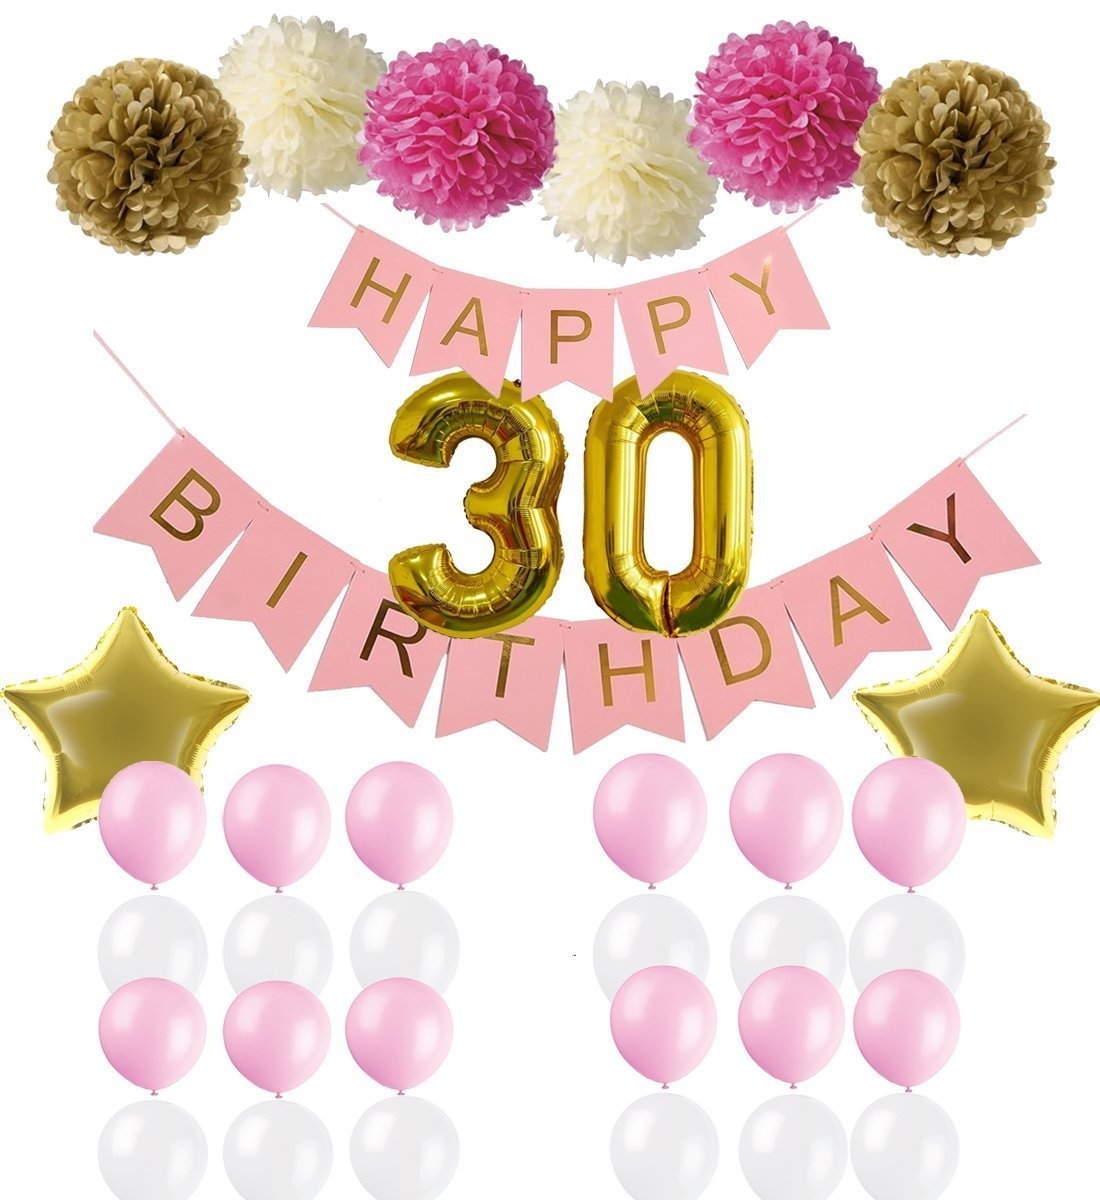 30th Party Decorations Kit,Happy Birthday Banner,30th Gold Number Balloons,pink and white balloon, Rose and Gold Pom Poms Flowers,Perfect for 30 Years Party Supplies Rhincow